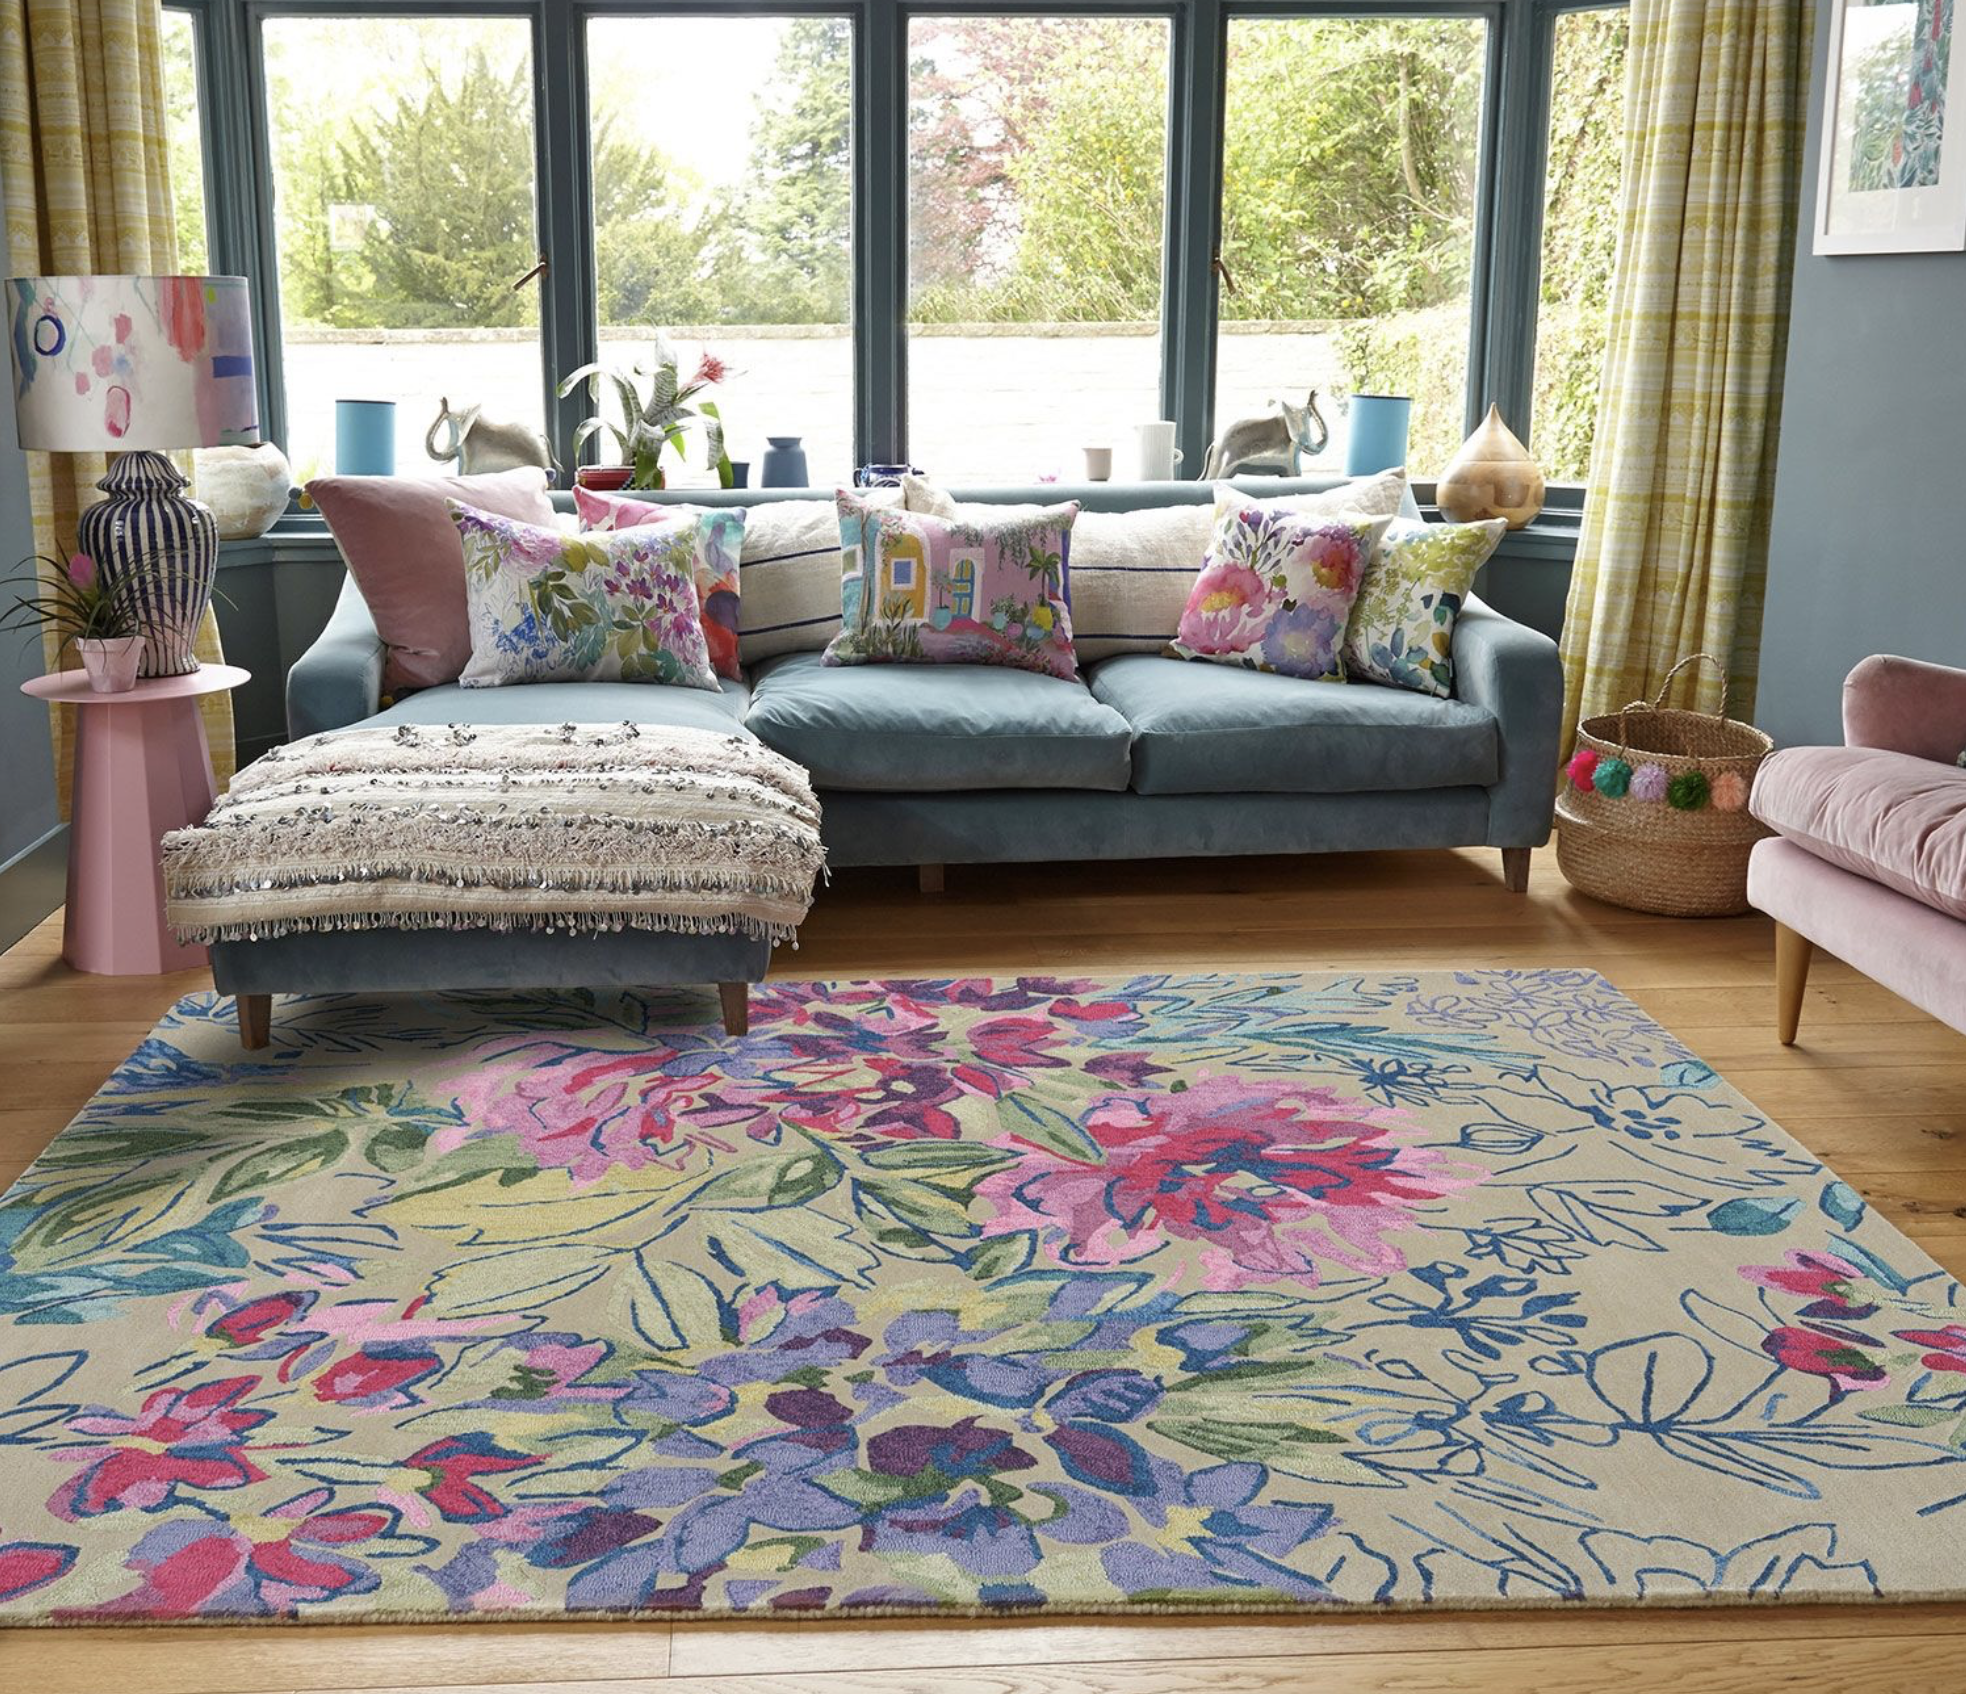 Bluebellgray Ines wool rug, made to order in Holland by Brink & Campman